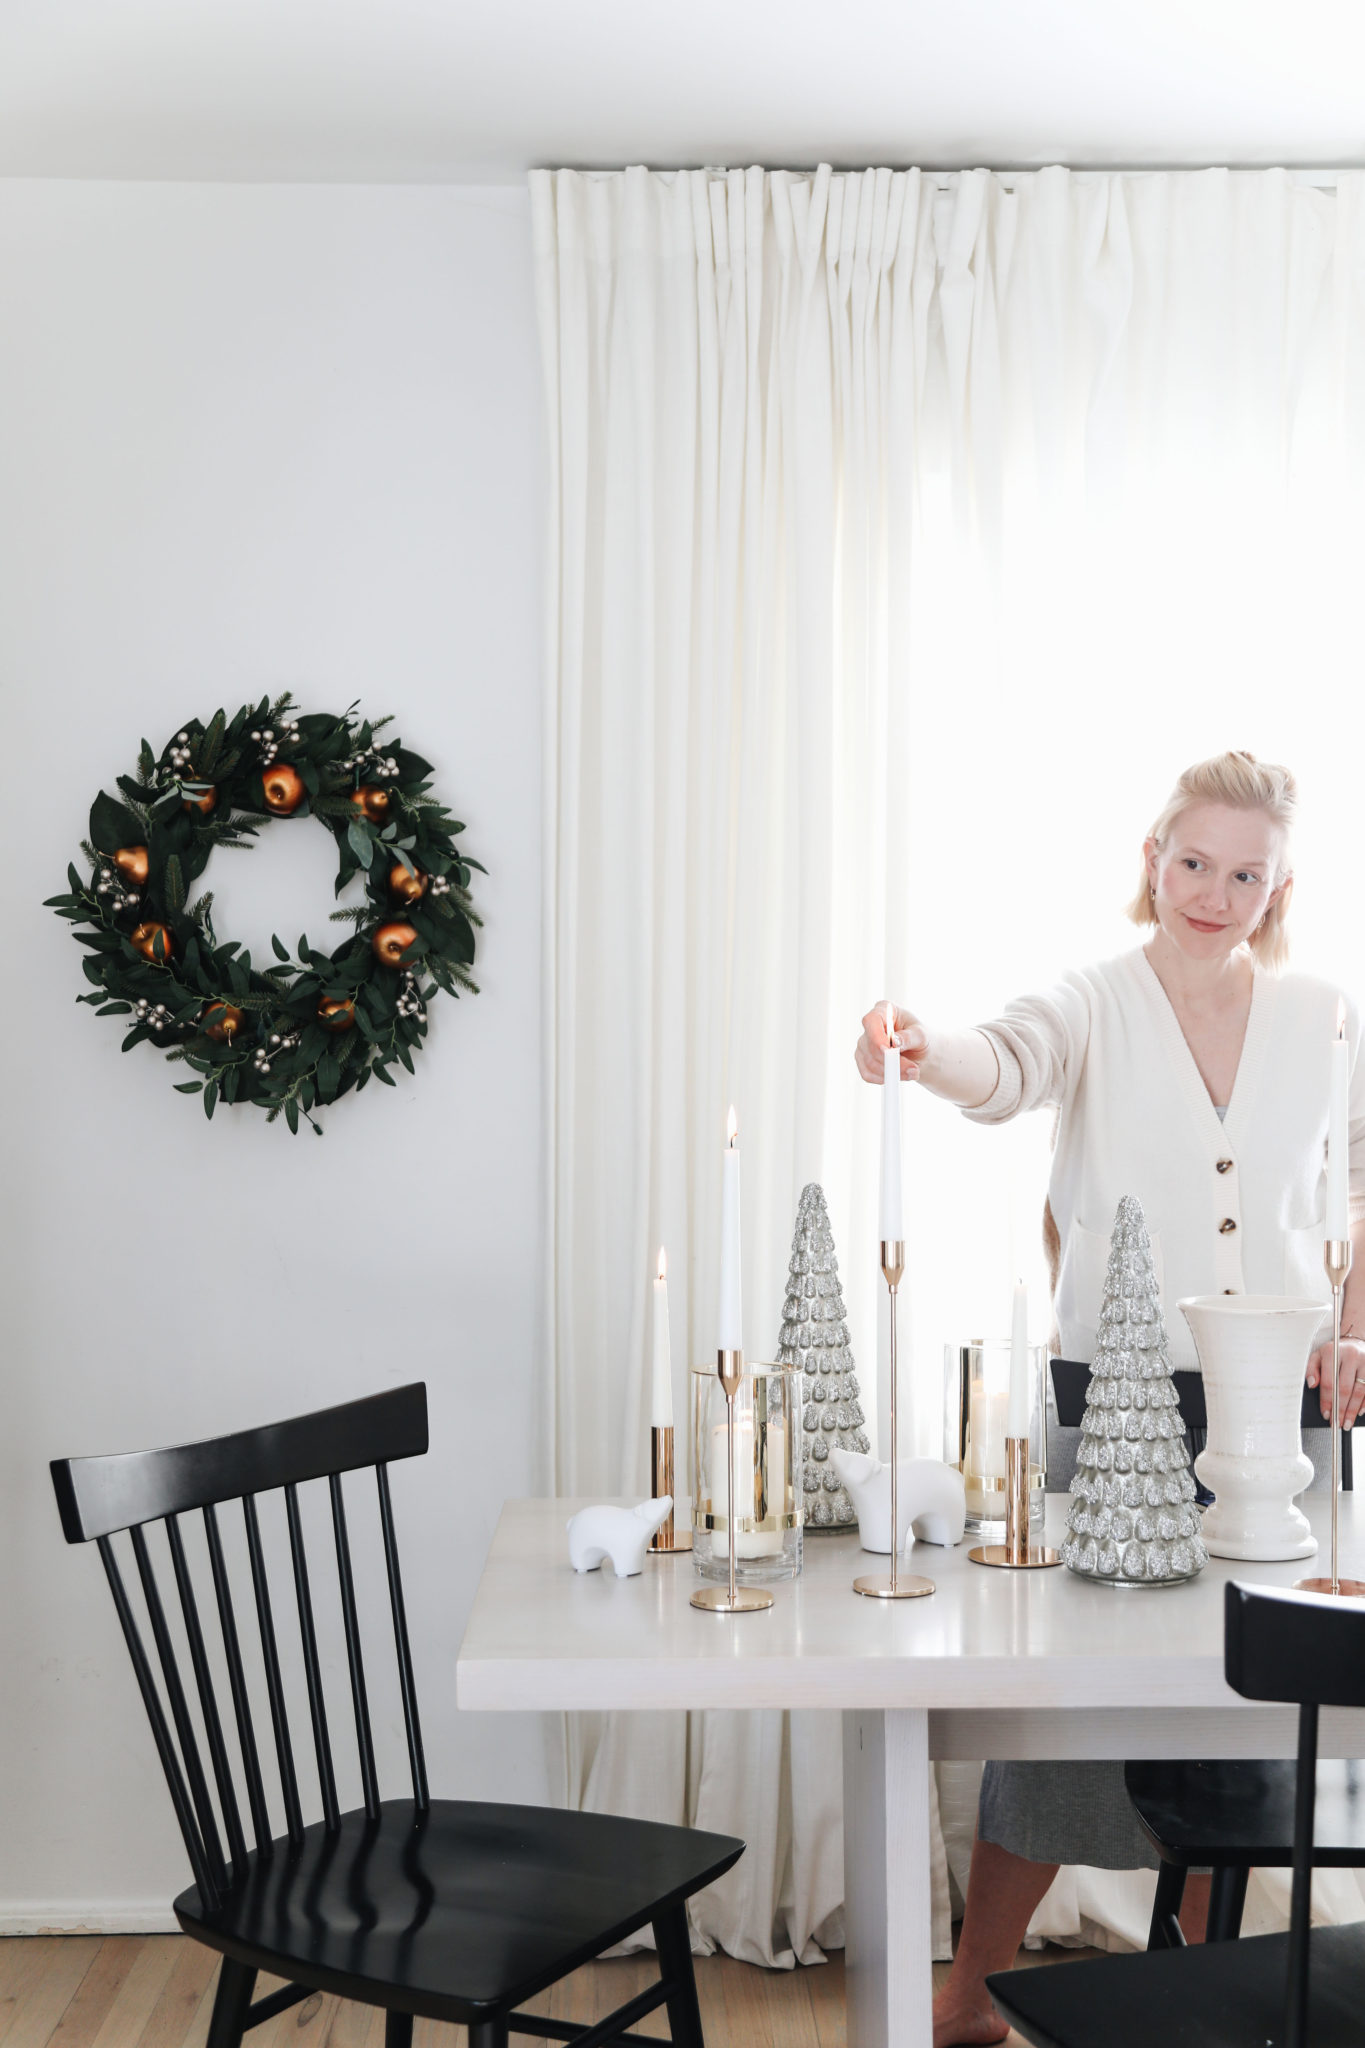 Christmas Decorating Ideas Designers Swear By_3 christmas decorating ideas Christmas Decorating Ideas Designers Swear By Christmas Decorating Ideas Designers Swear By 3